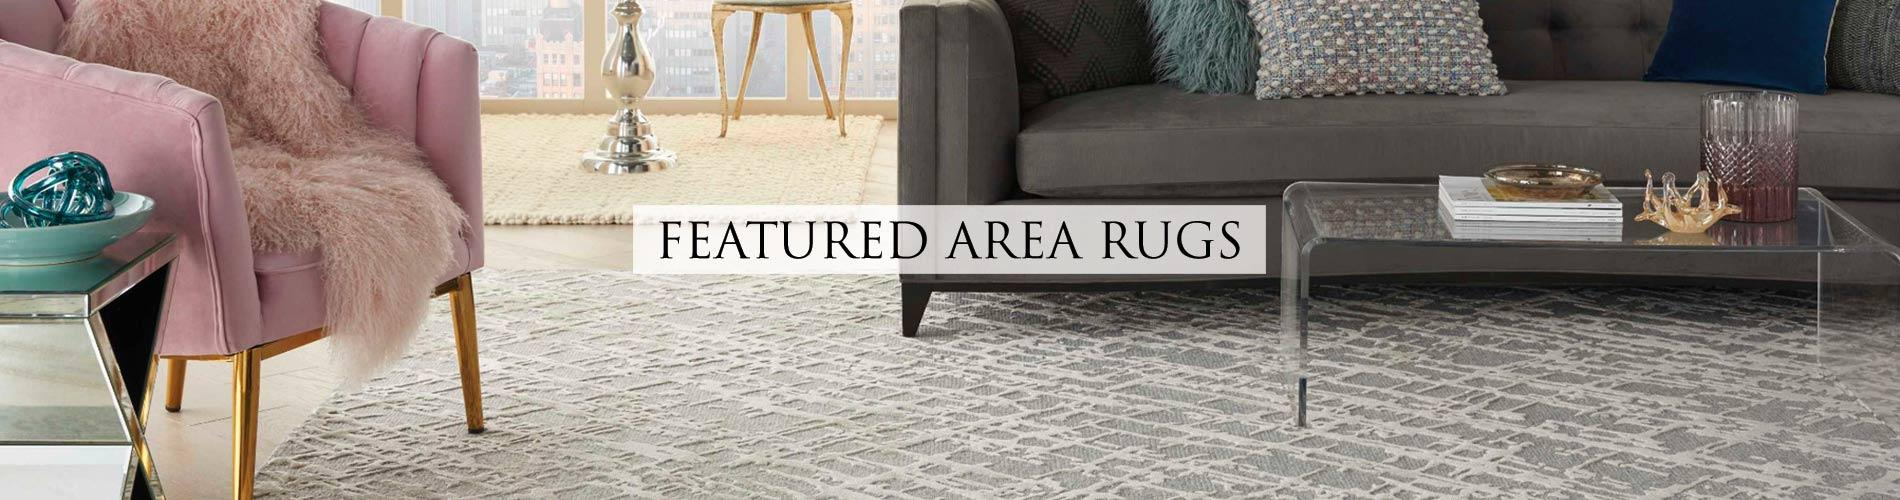 Adding an area rug to a room is a great way give that room a new look, provide warmth and add color. Find a rug that you love and use it as inspiration to decorate the space around it. Area rugs are easy to move from room to room. You can put rugs in different rooms of your home to create fresh looks.